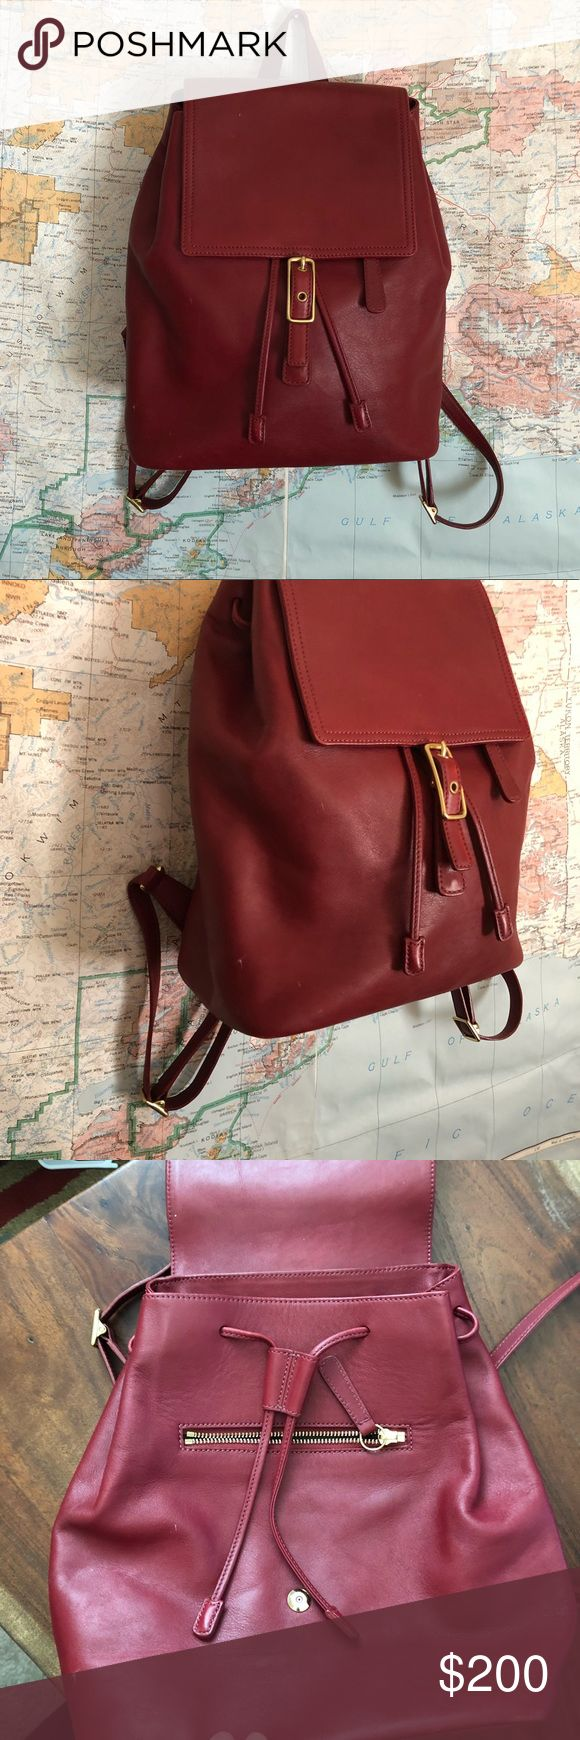 "Vintage Coach Burgundy Backpack Coach  Vintage only one owner Perfect condition Has the dust bag Burgundy cranberry color Amazing chic and trendy  Price is firm! About 12"" tall And 13 wise when pushed flag Coach Bags Backpacks"